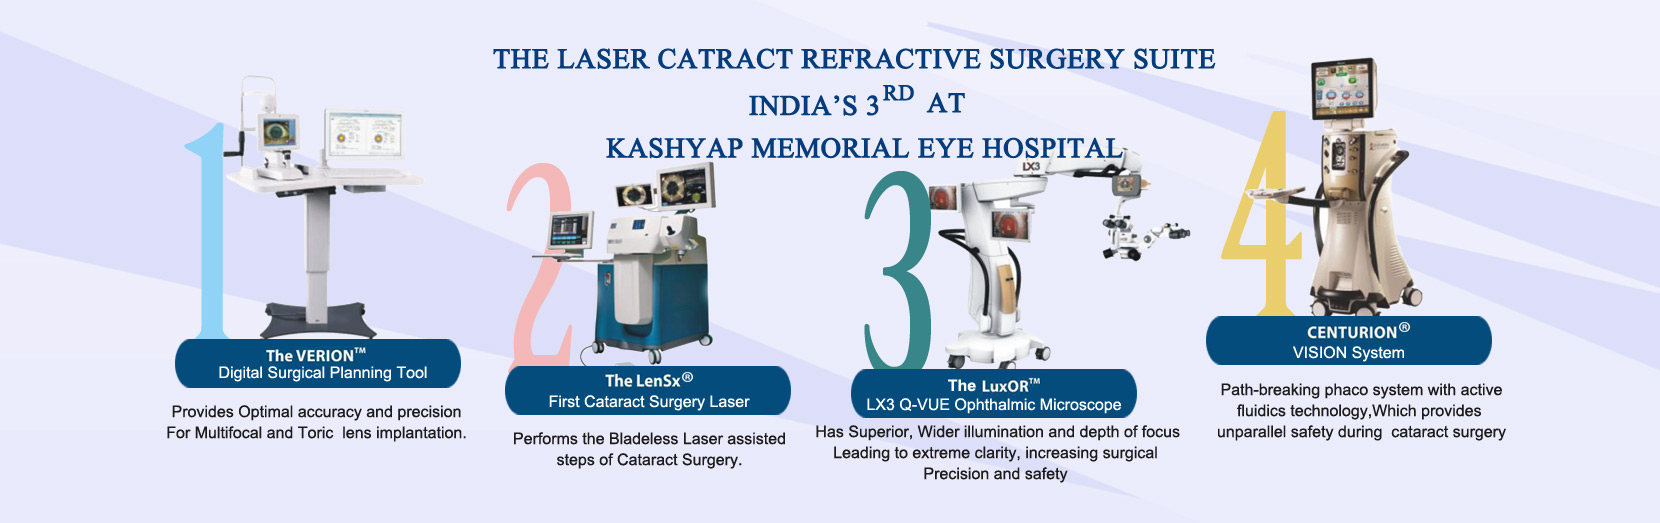 Best femto laser cataract surgery, Best femto lasik Surgery, best femto laser cataract surgery hospital in india, femto laser cataract surgery , best eye hospital in india, Best Cataract Eye surgery hospital India, top 10 Cataract Eye surgery hospital India, top 10 Laser Eye Surgery in India, top 5 eye hospital in India, top 10 eye hospital in India